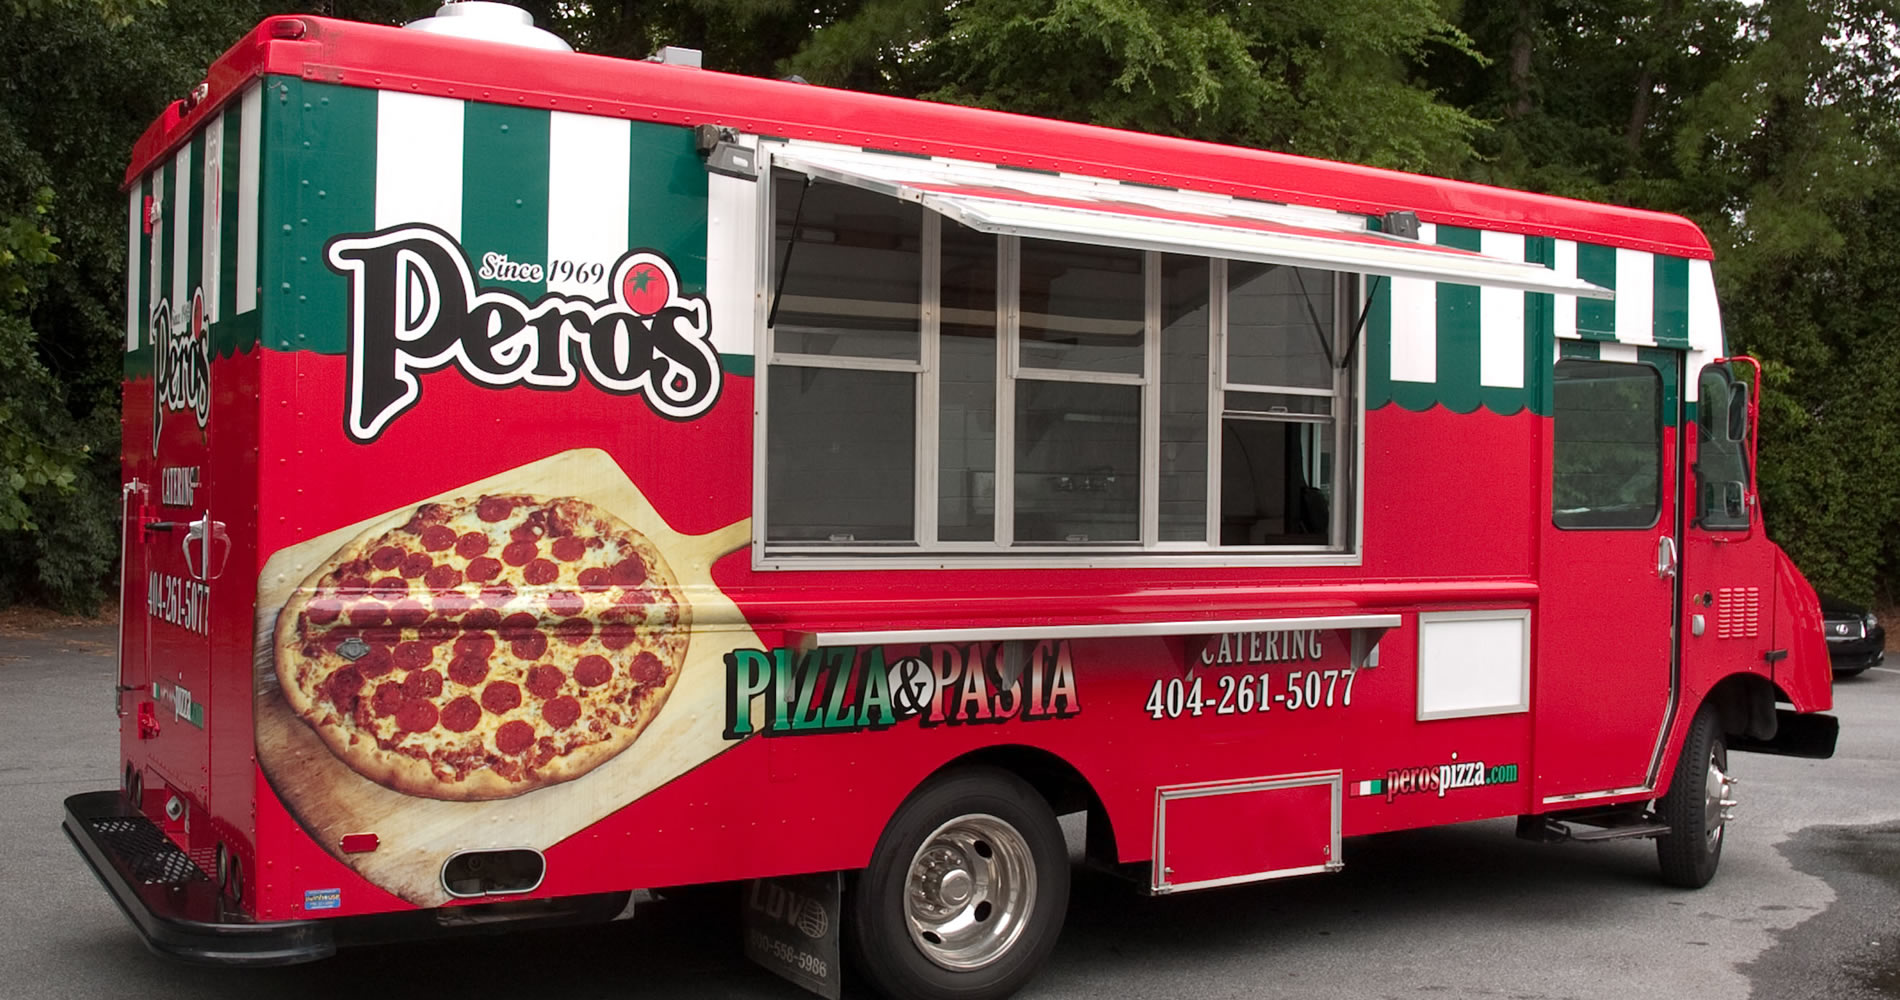 Italiano & Pizza, Pizza & Pasta Restaurant, Dining In, Catering, Delivery